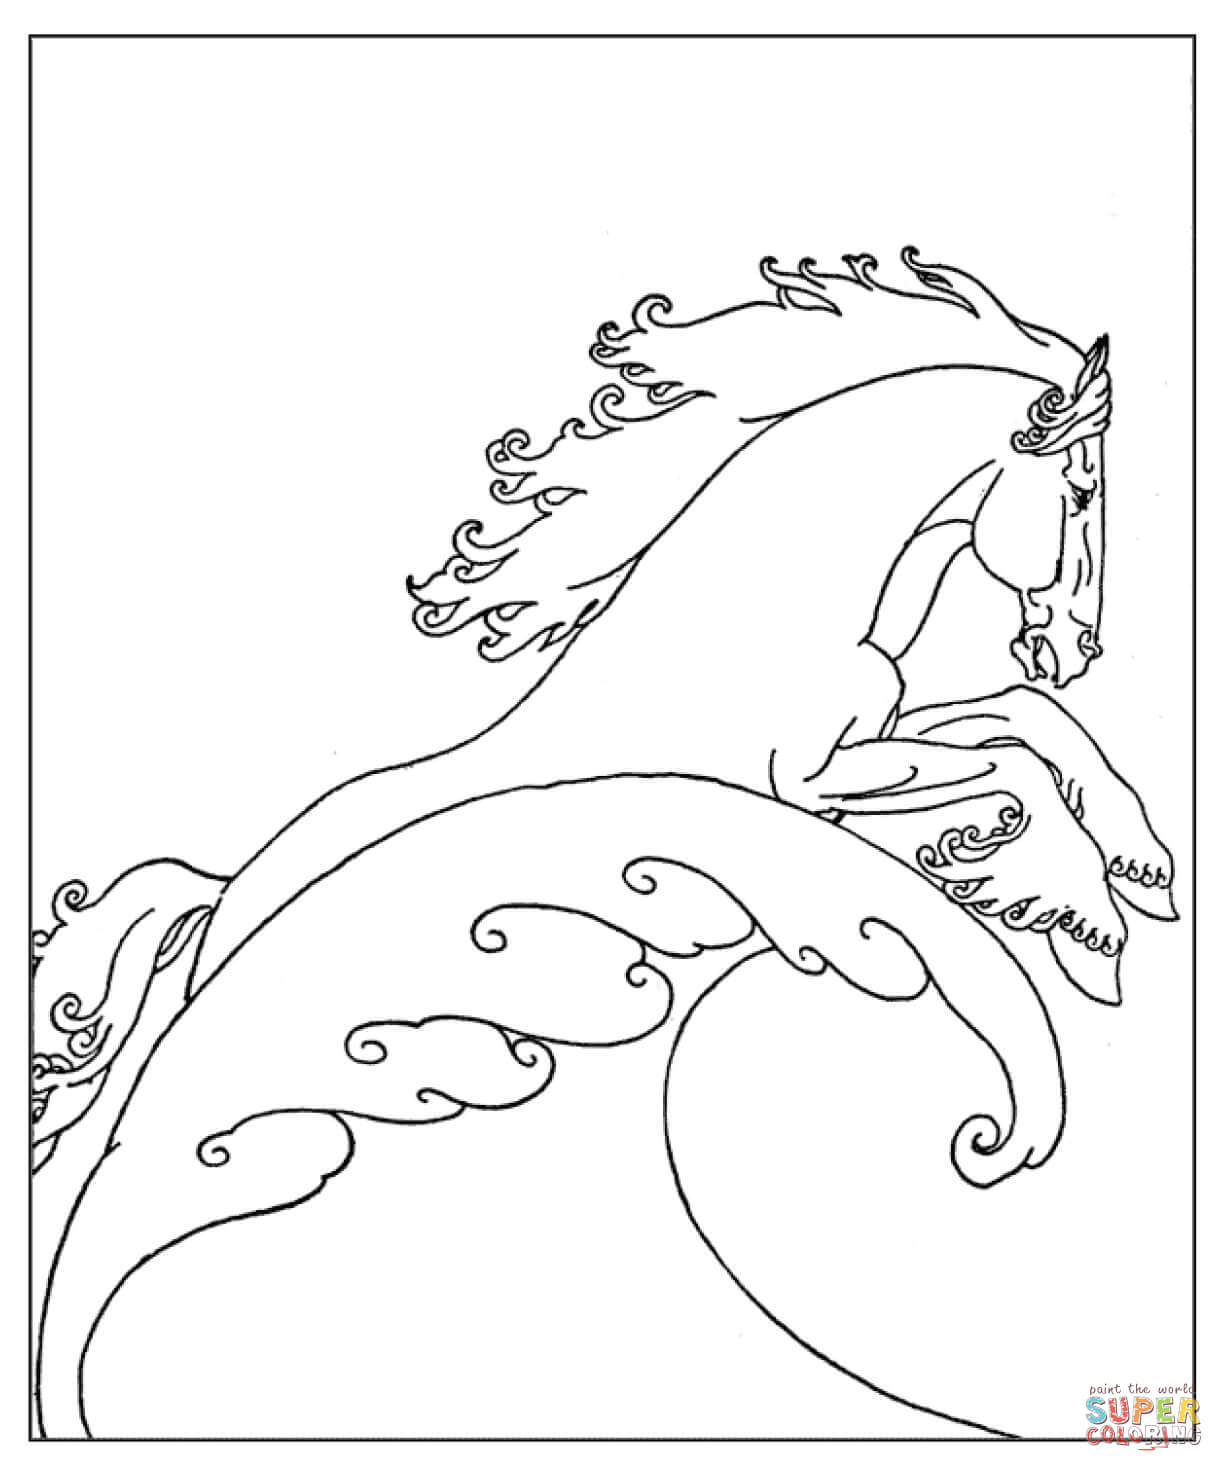 neptune 39 s sea horse coloring page free printable coloring pages